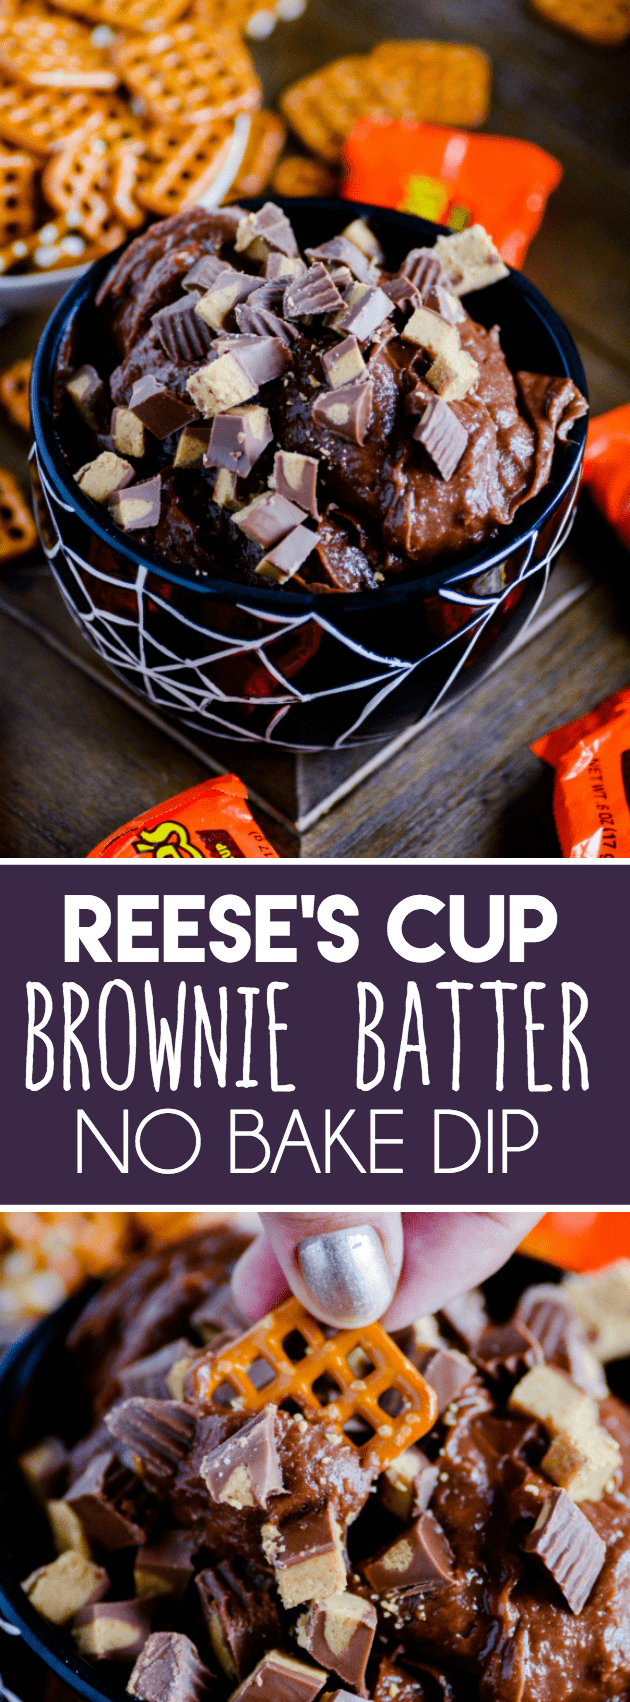 If you love brownie batter, this is the recipe for you!